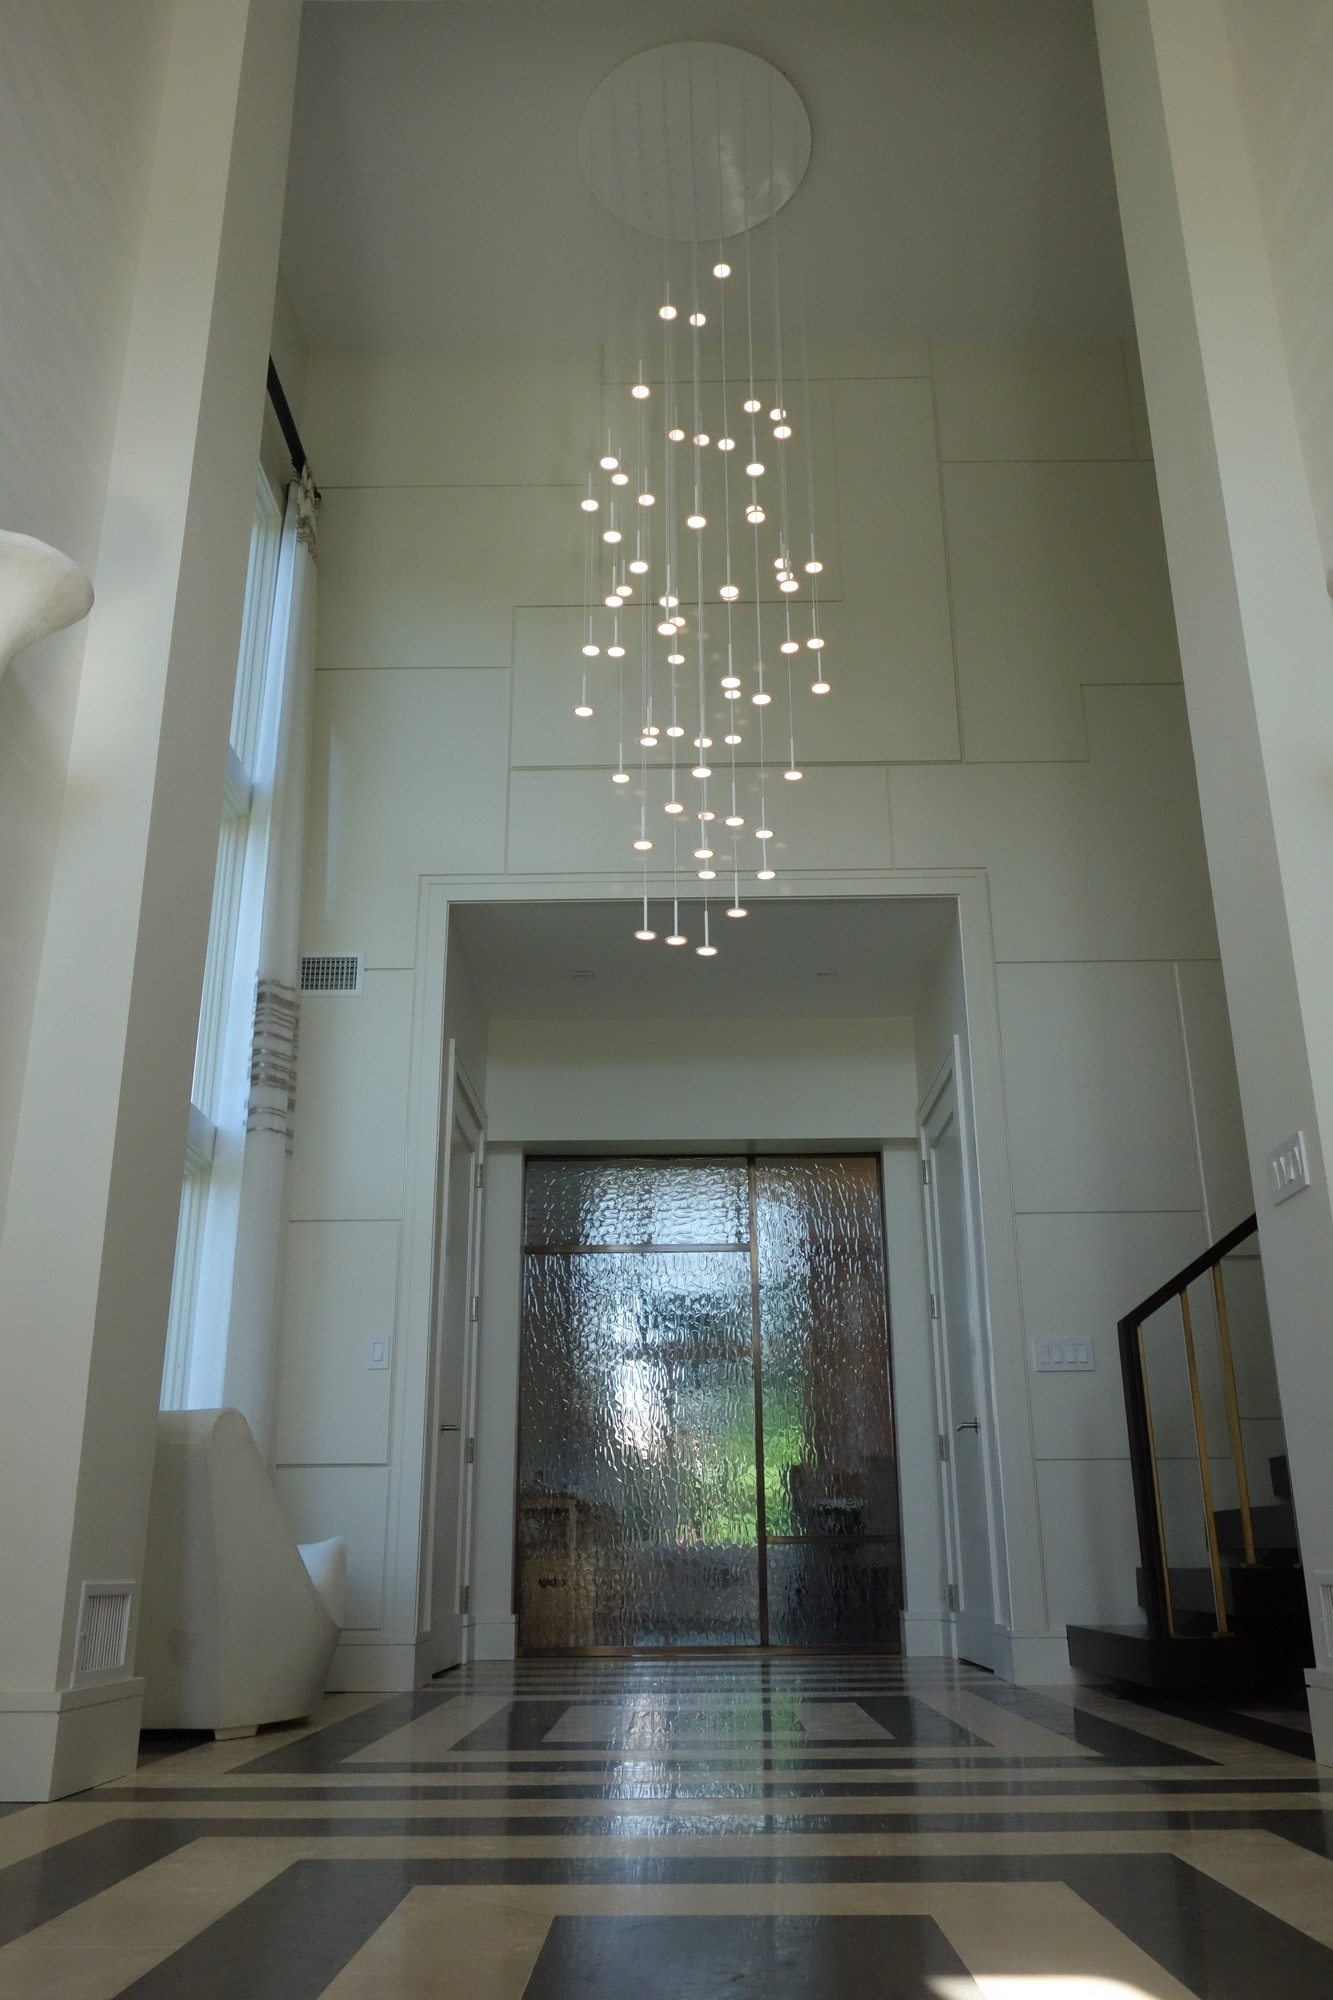 Irain 61 Cascade Of Light Hanging Chandelier With 61 Oleds